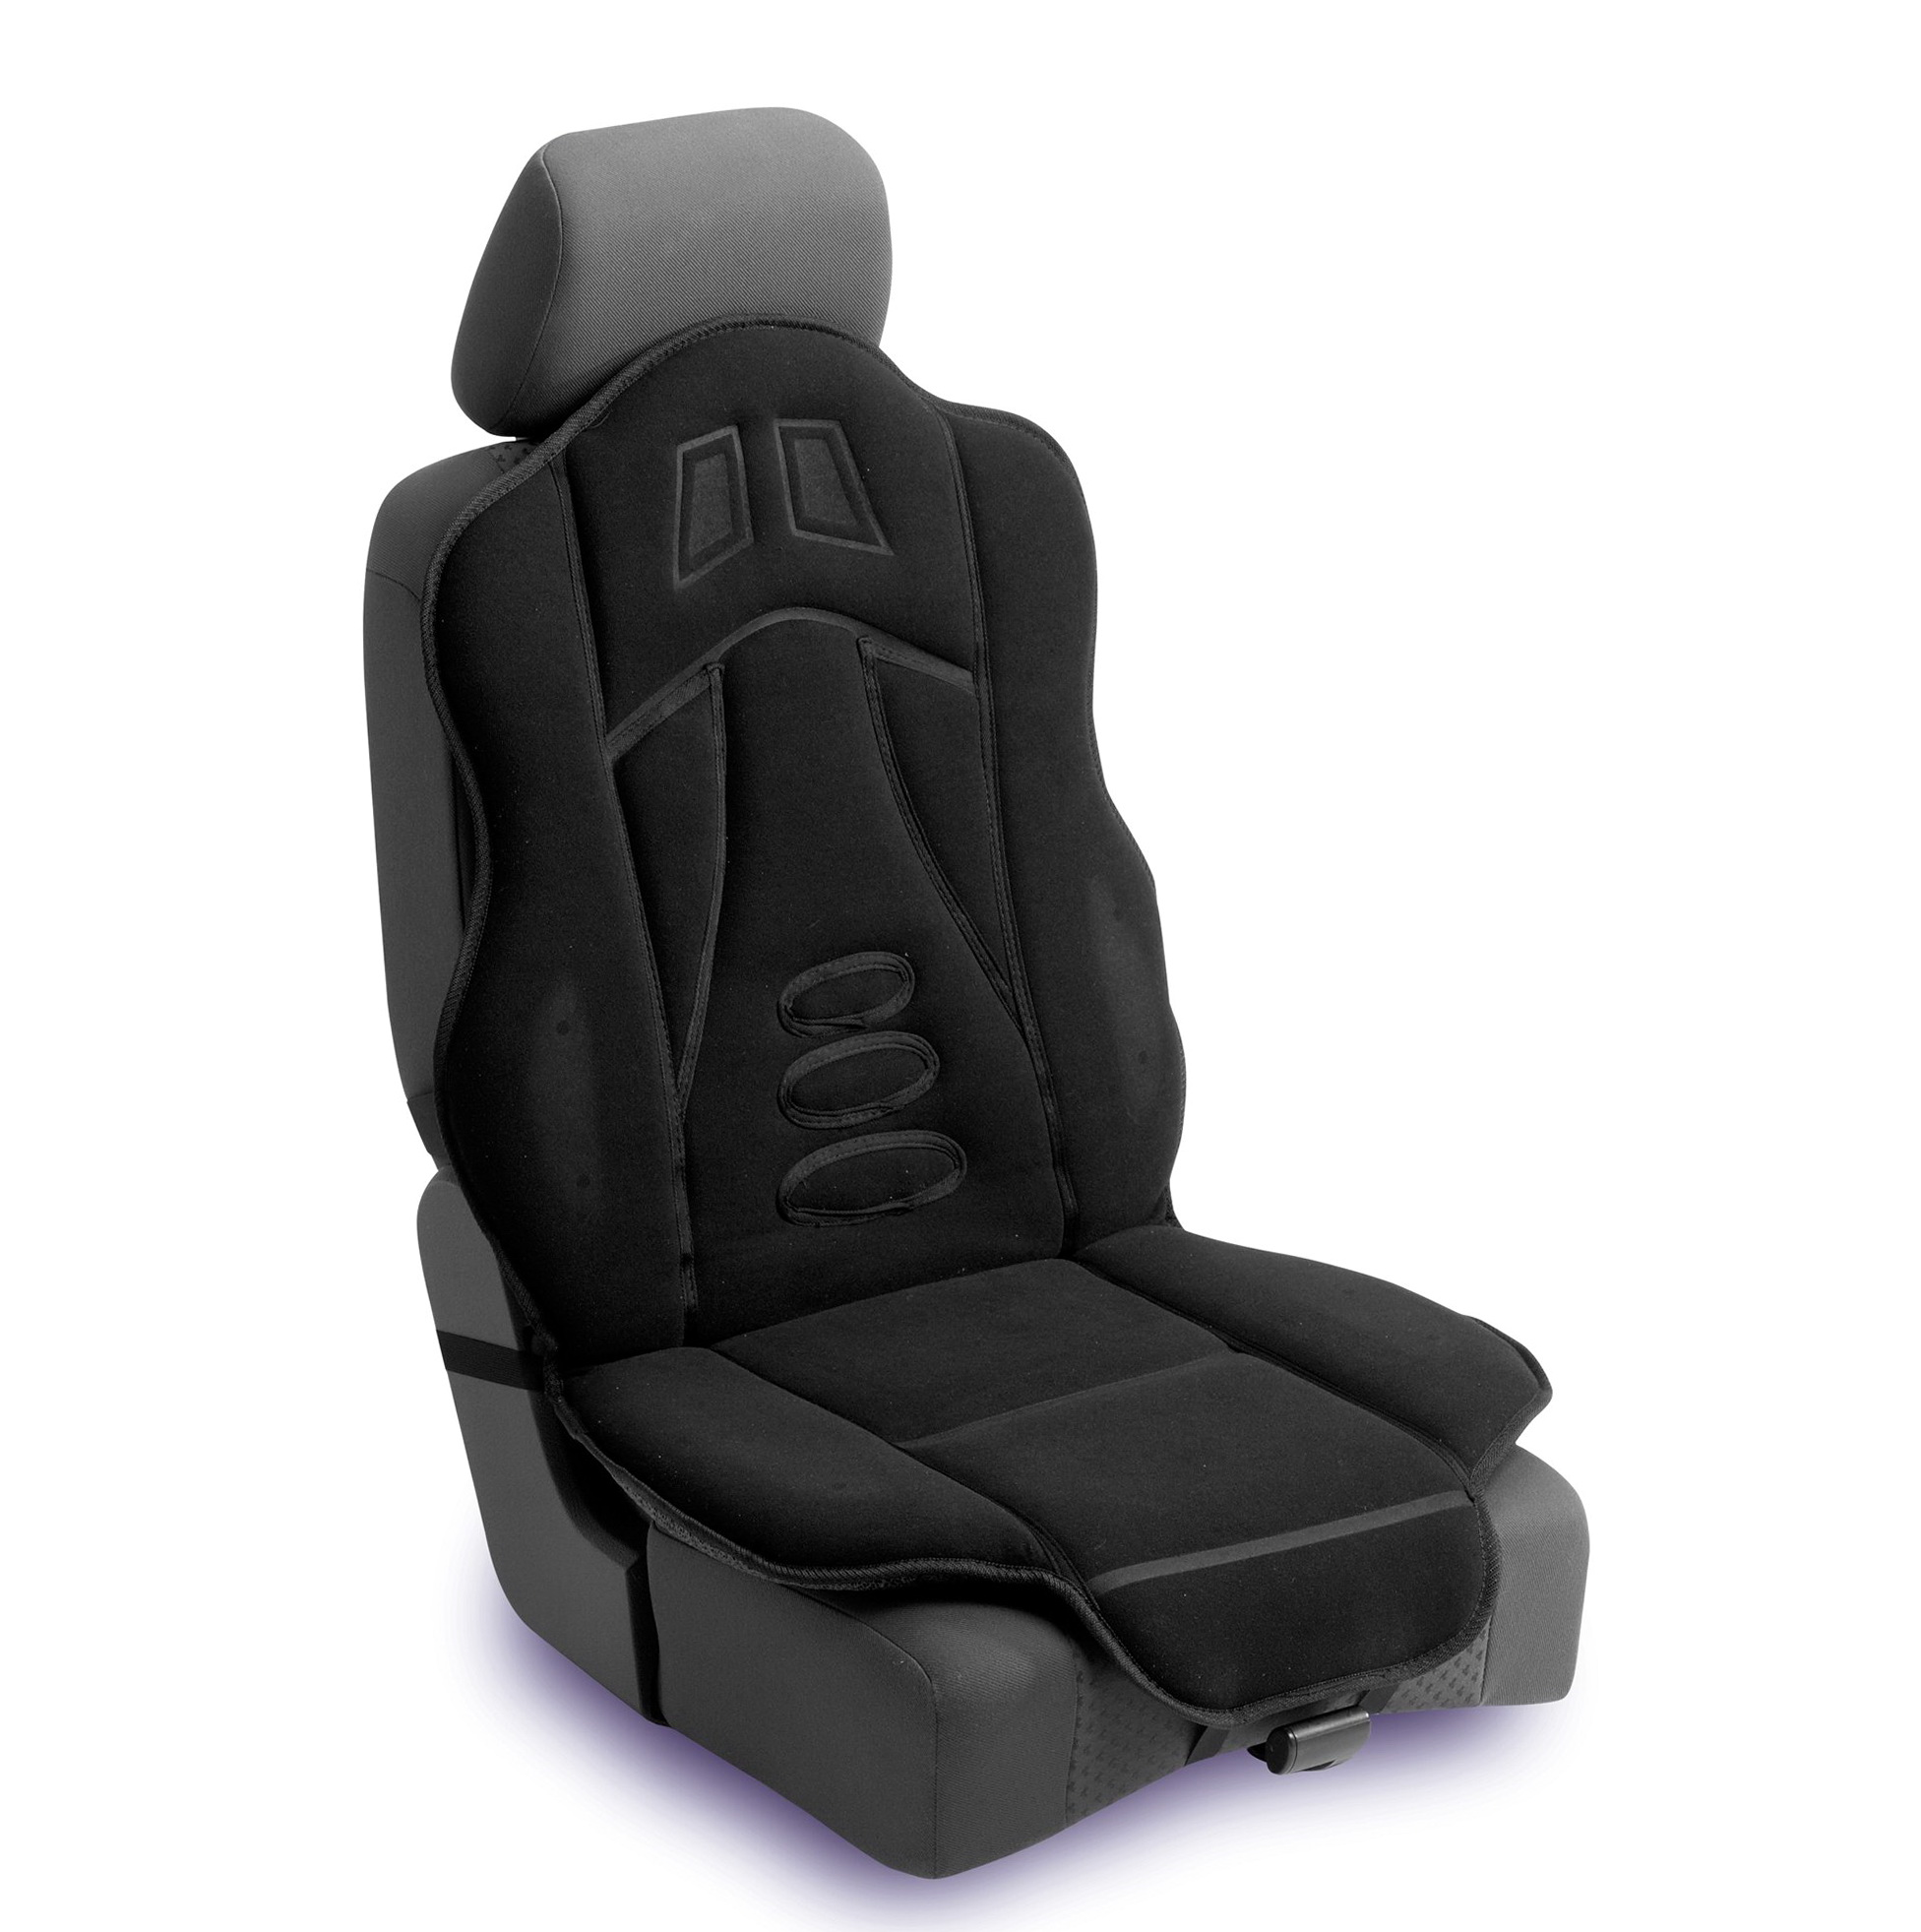 Car Seat Cushions For Short Drivers Home Design Ideas